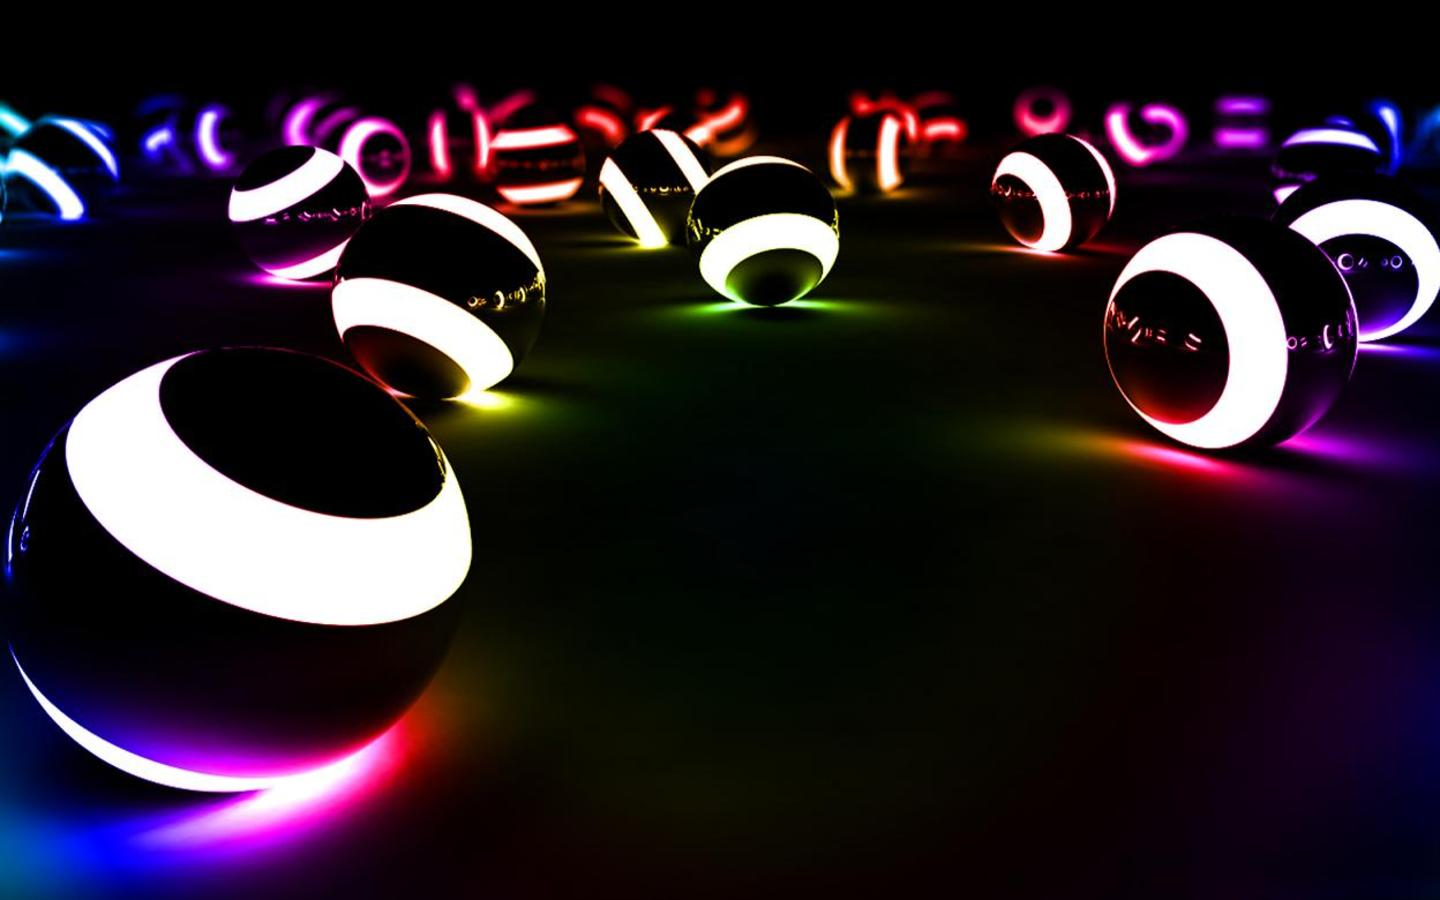 Cool neon backgrounds   SF Wallpaper 1440x900